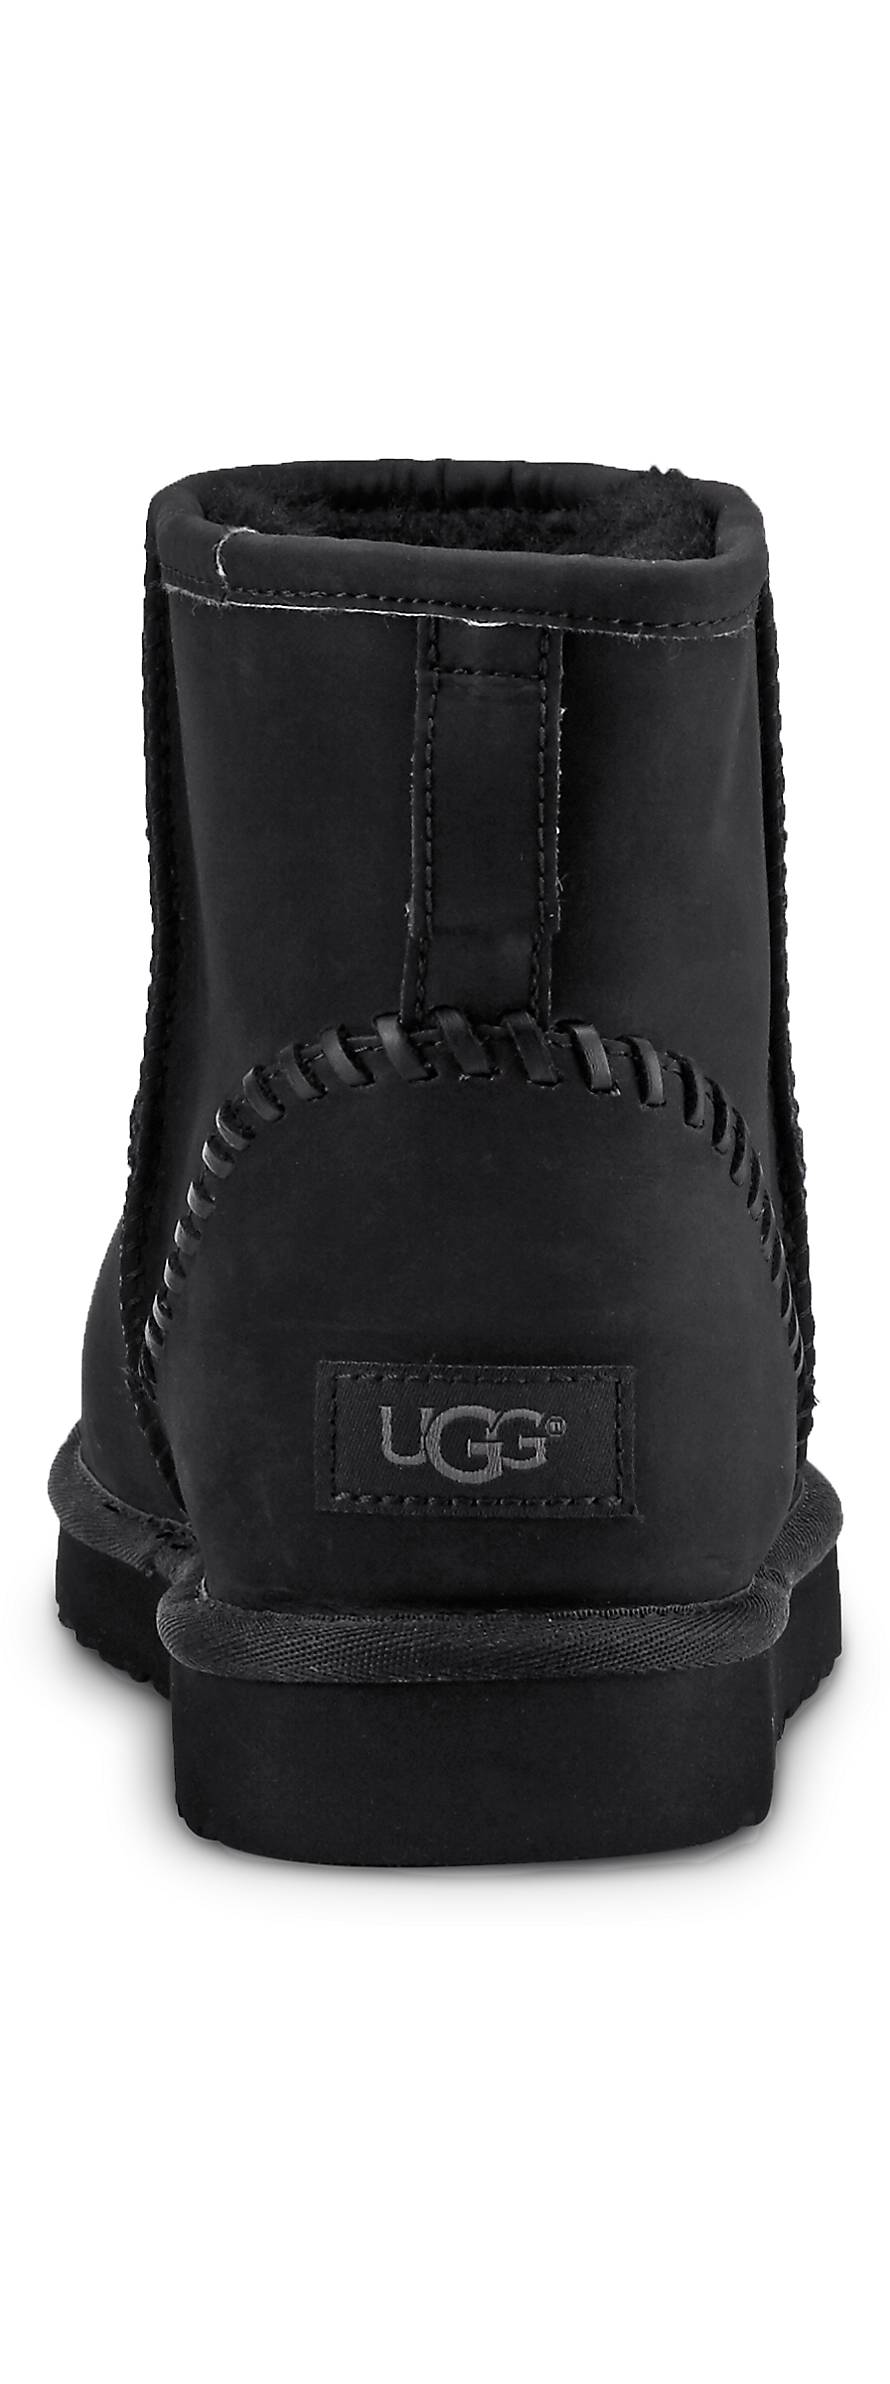 ugg boots mini bailey bow braun. Black Bedroom Furniture Sets. Home Design Ideas